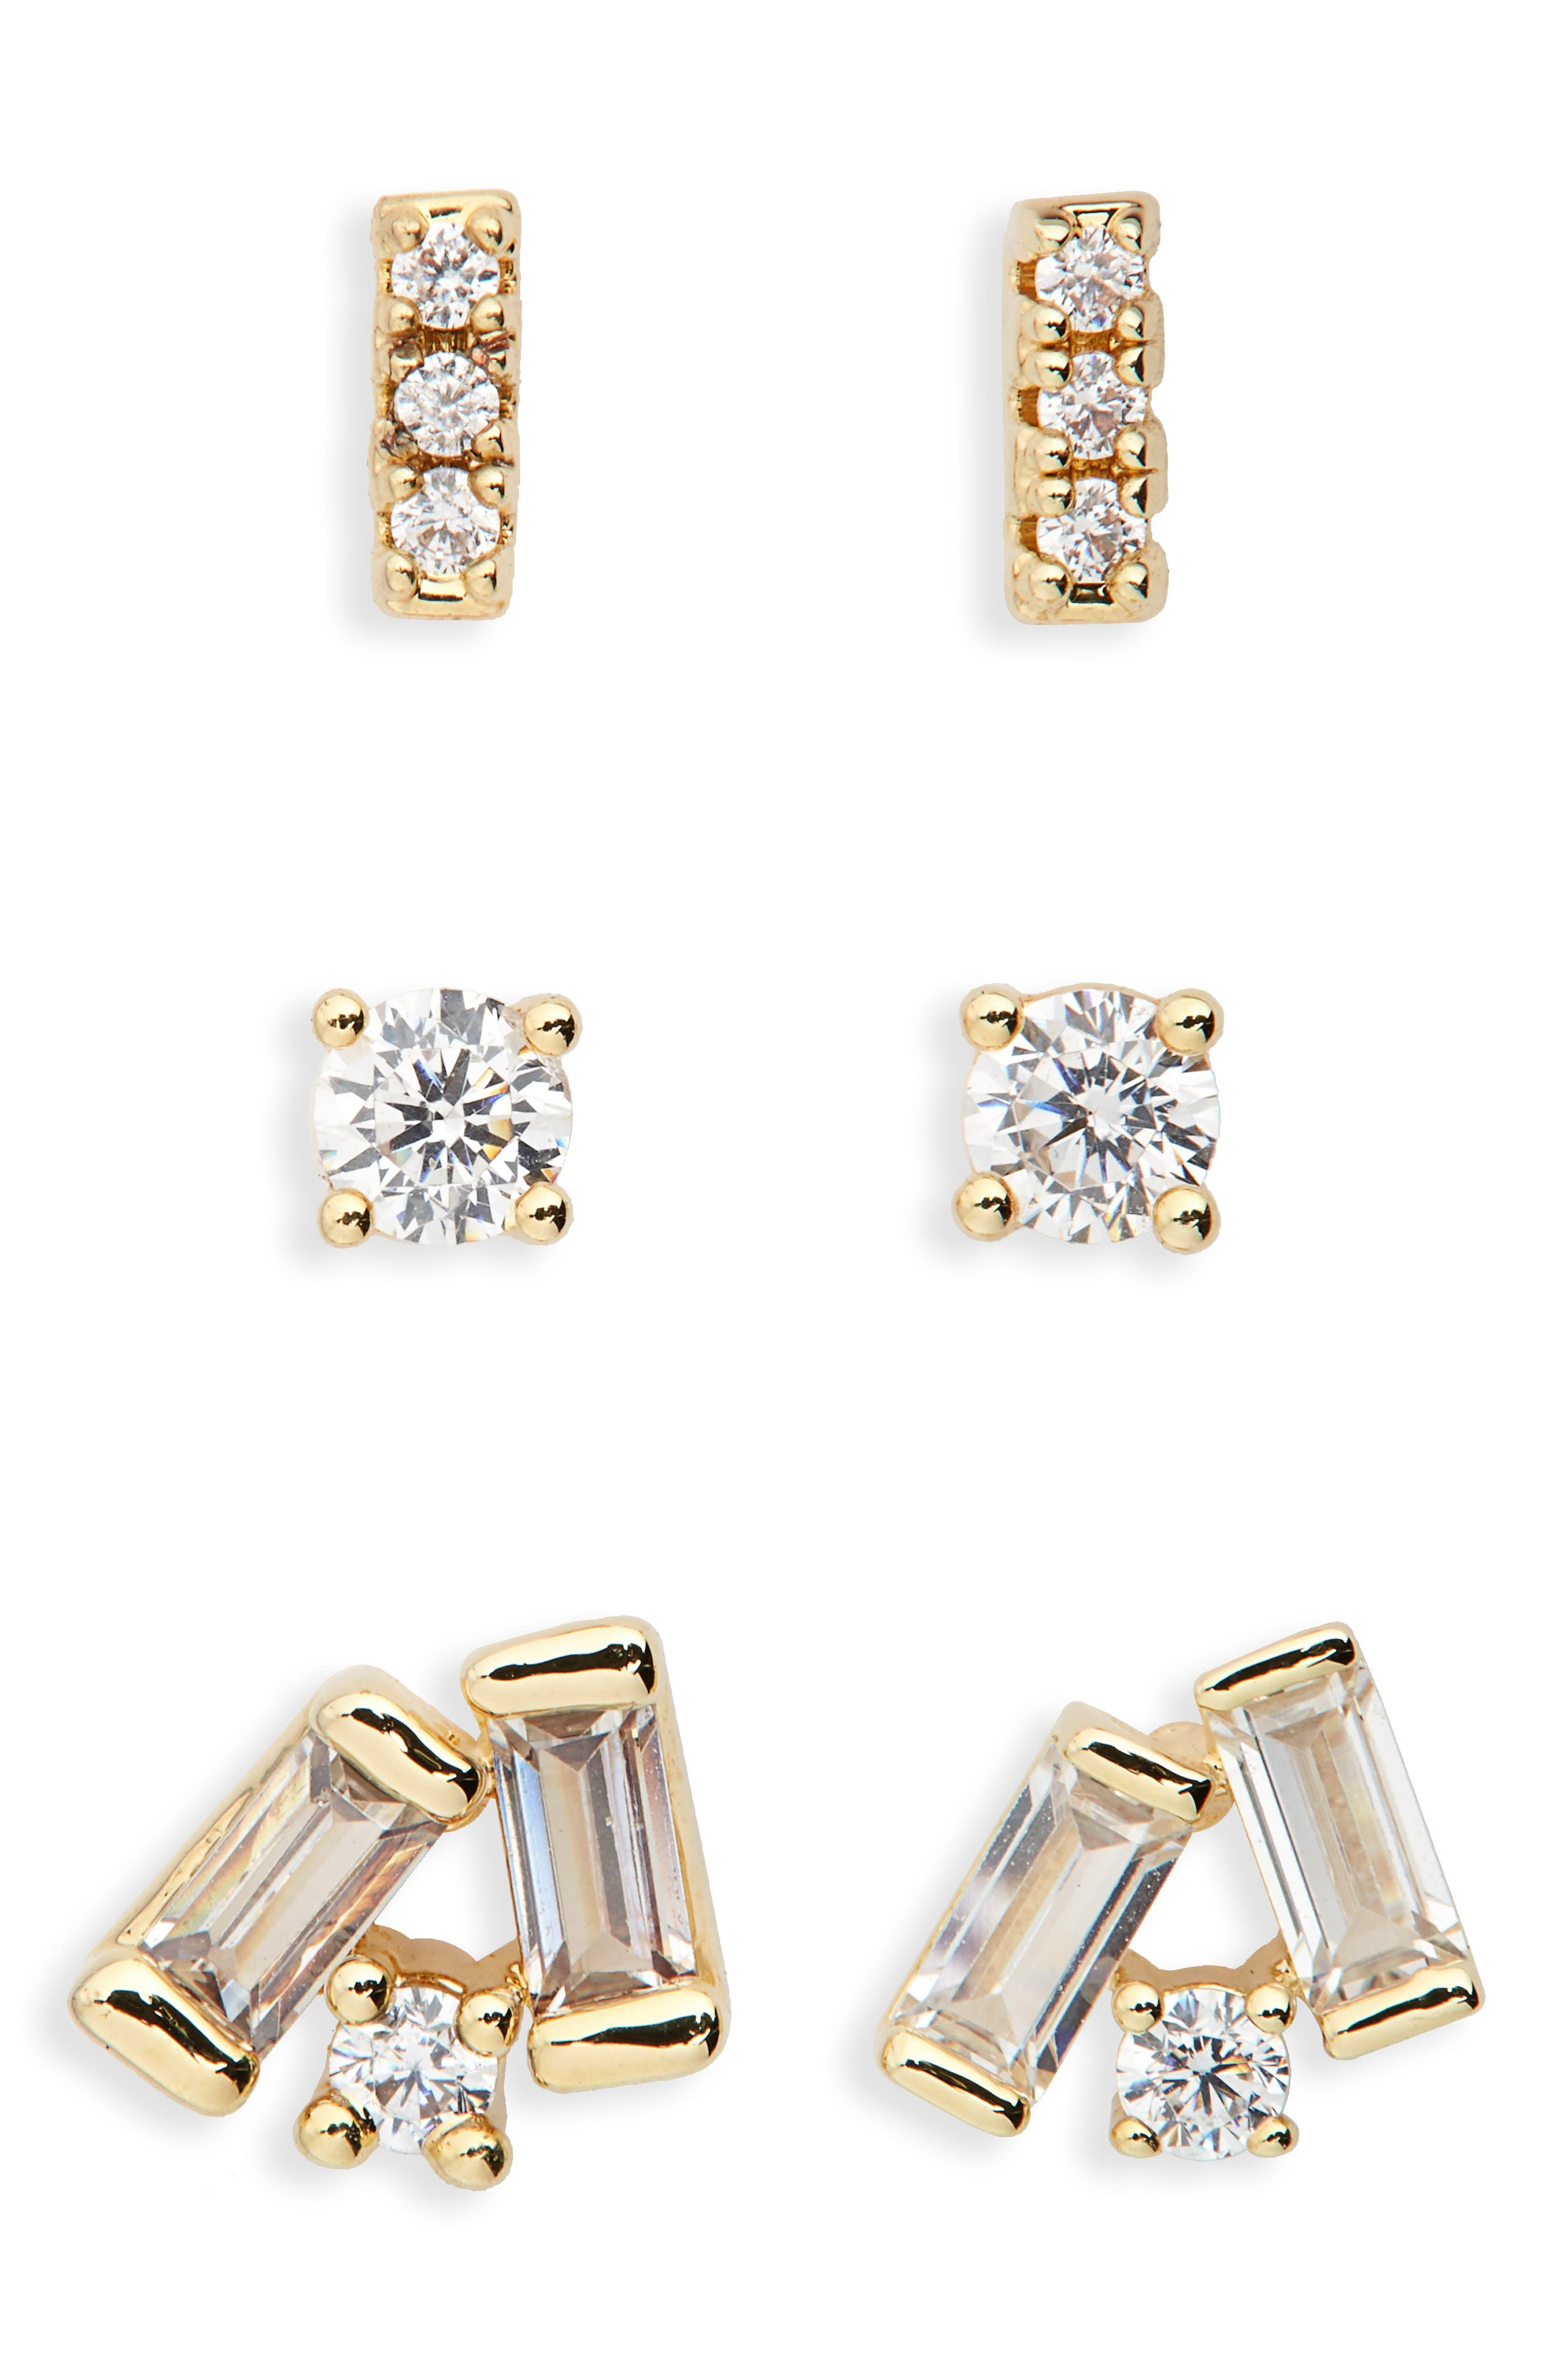 Set of 3 Stud Earrings,                             Main thumbnail 1, color,                             CLEAR- GOLD